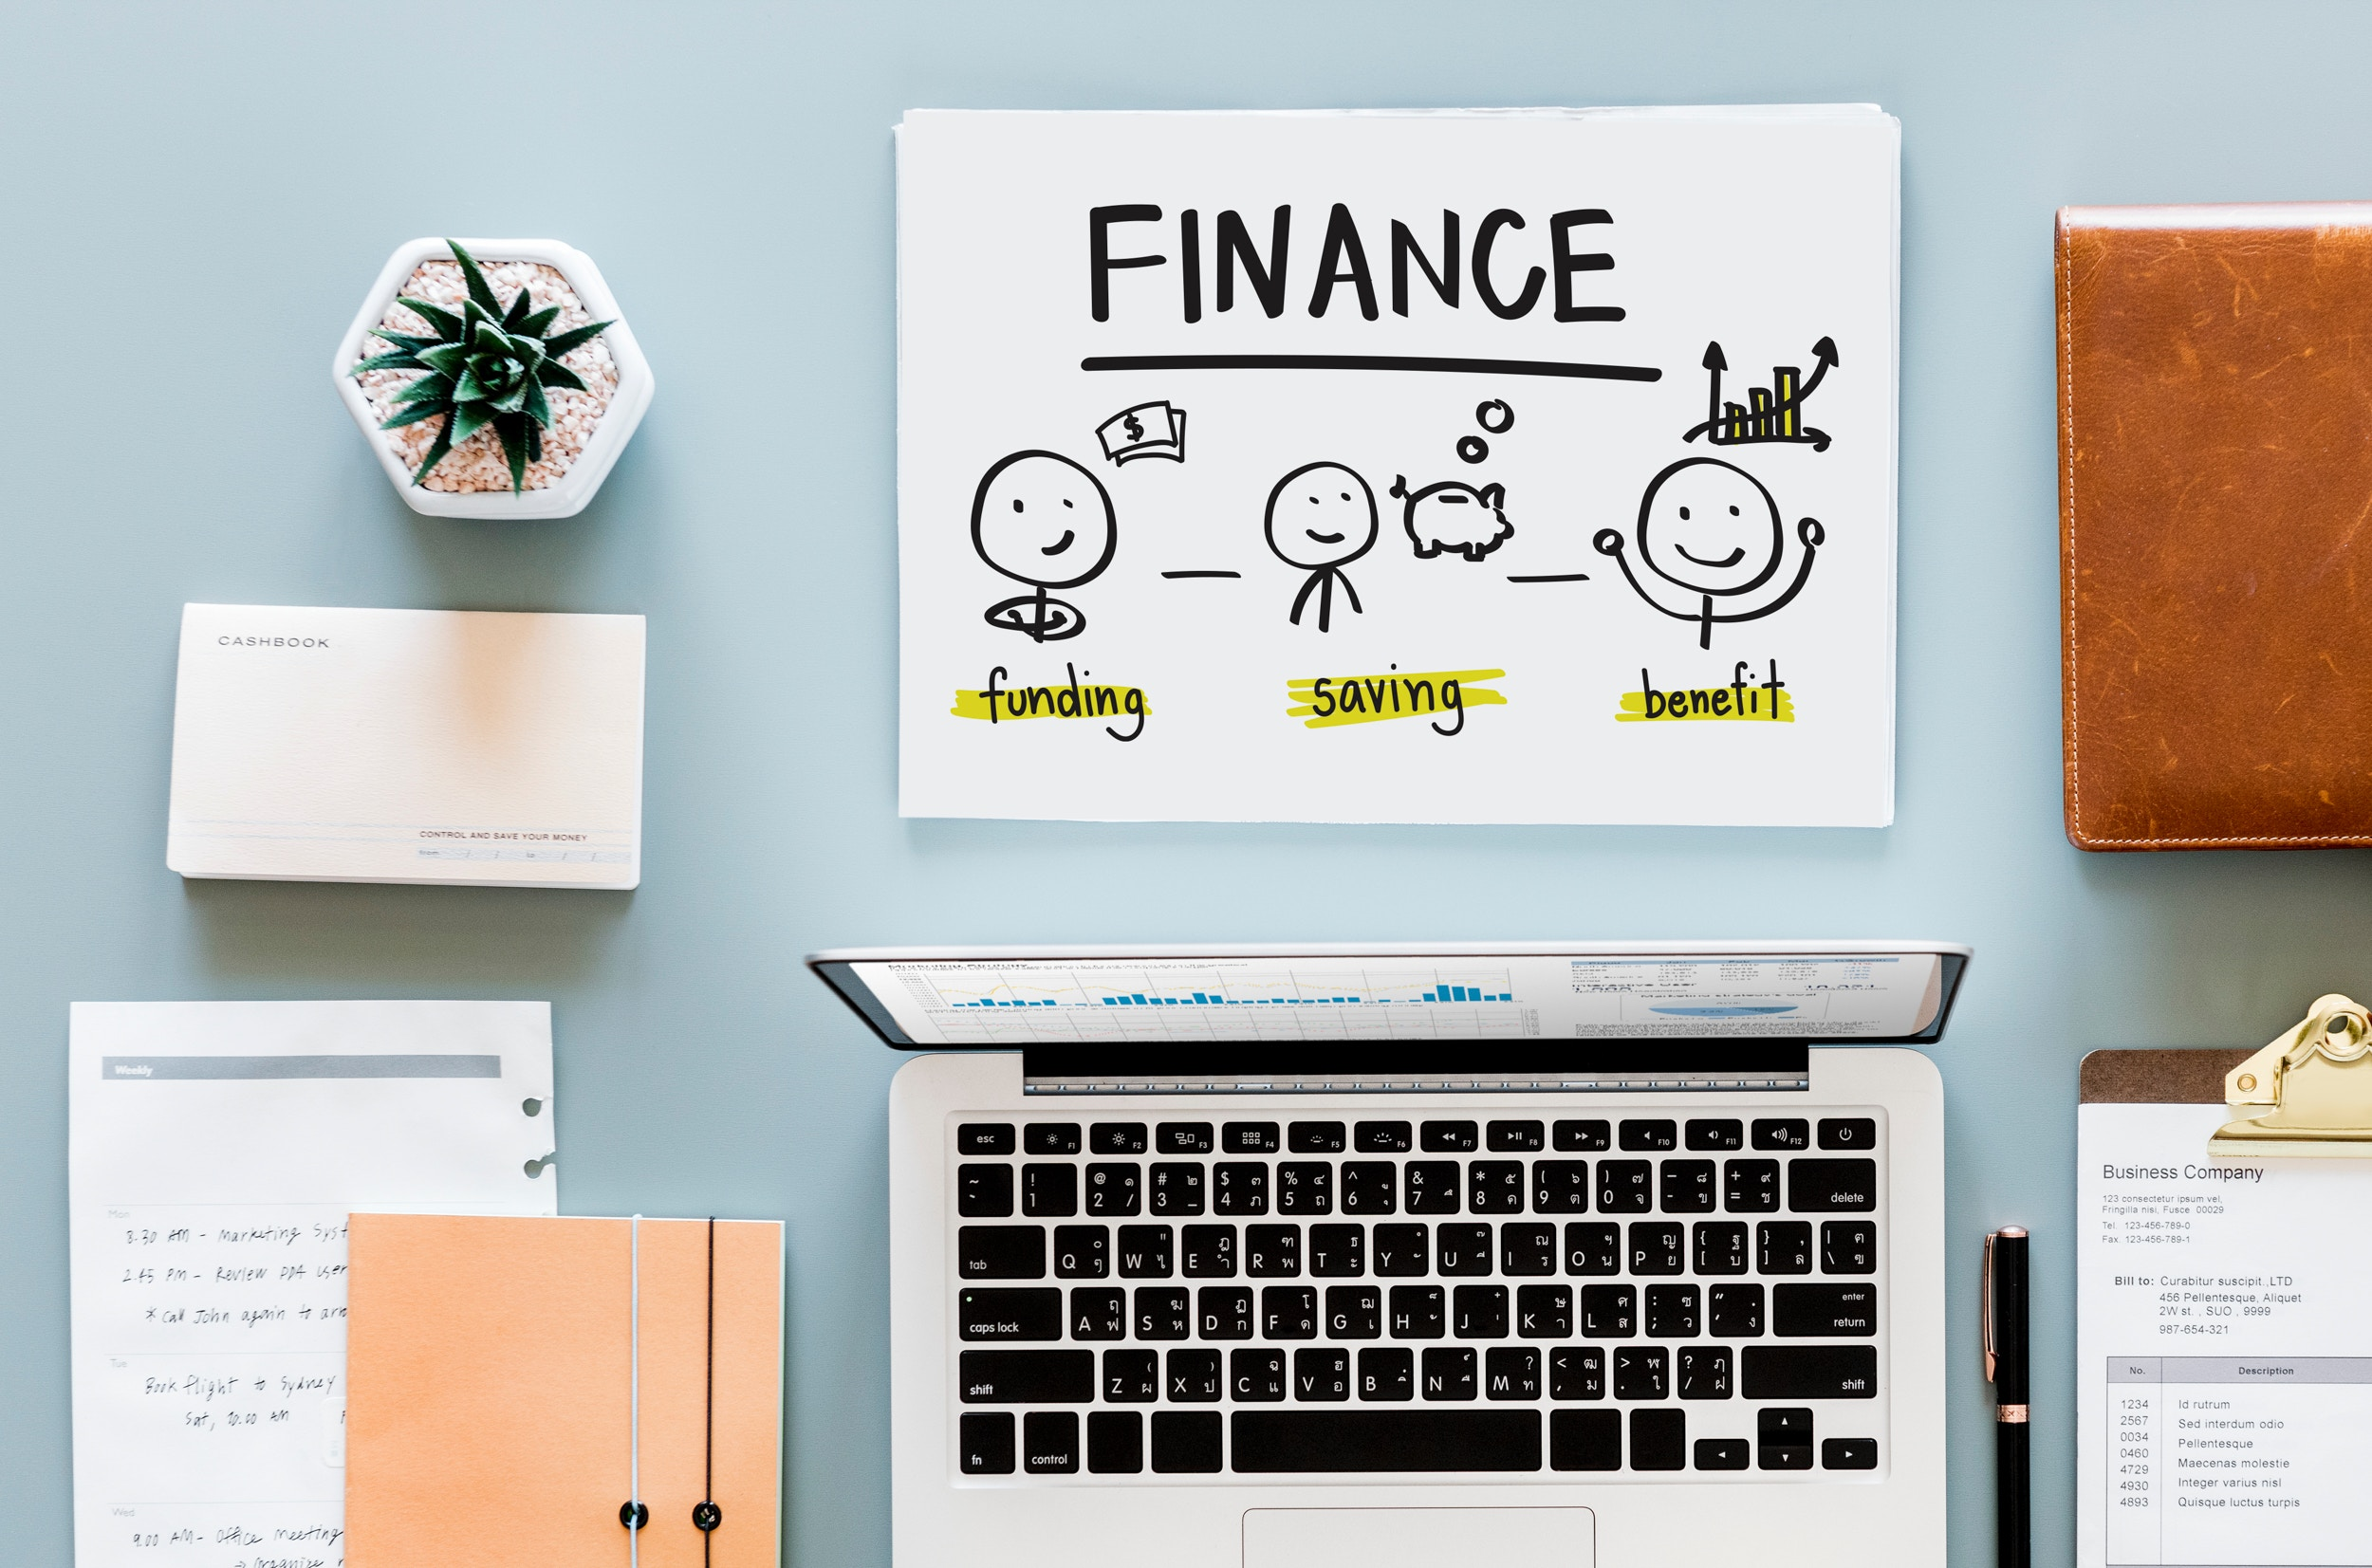 2 Simple Financial Steps You Can Take to Get Ahead - Celebrate Financial Planning Month by making a commitment to get your finances in order.